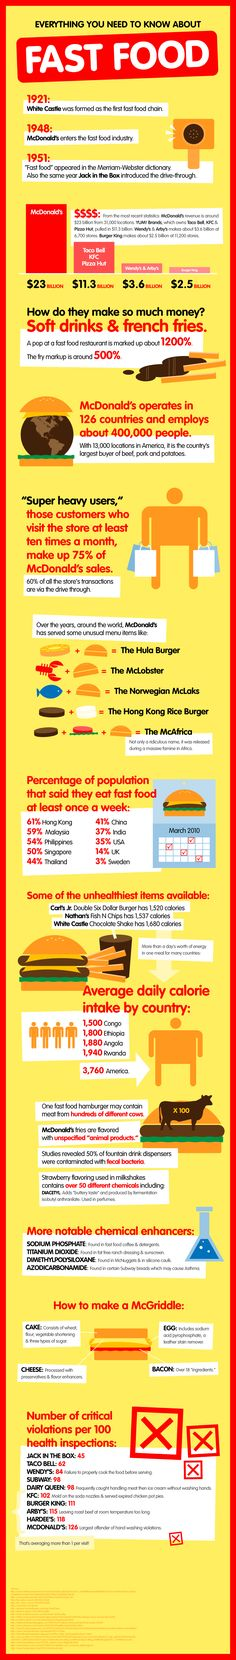 Stereotypes about that all Americans are only Fast Food eaters just crushed. =].